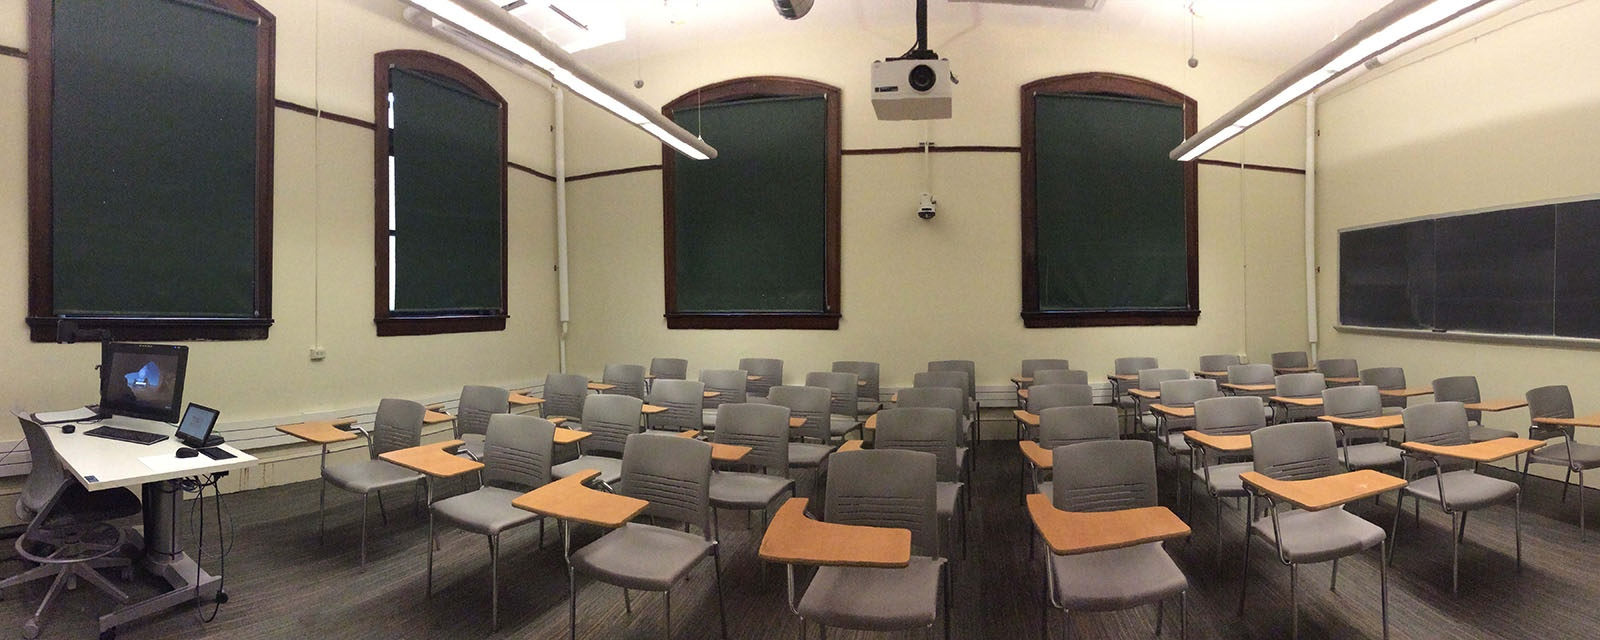 Carnegie 114 Panorama from front to back, chairs moveable with desk attached, teaching station to left of entrance